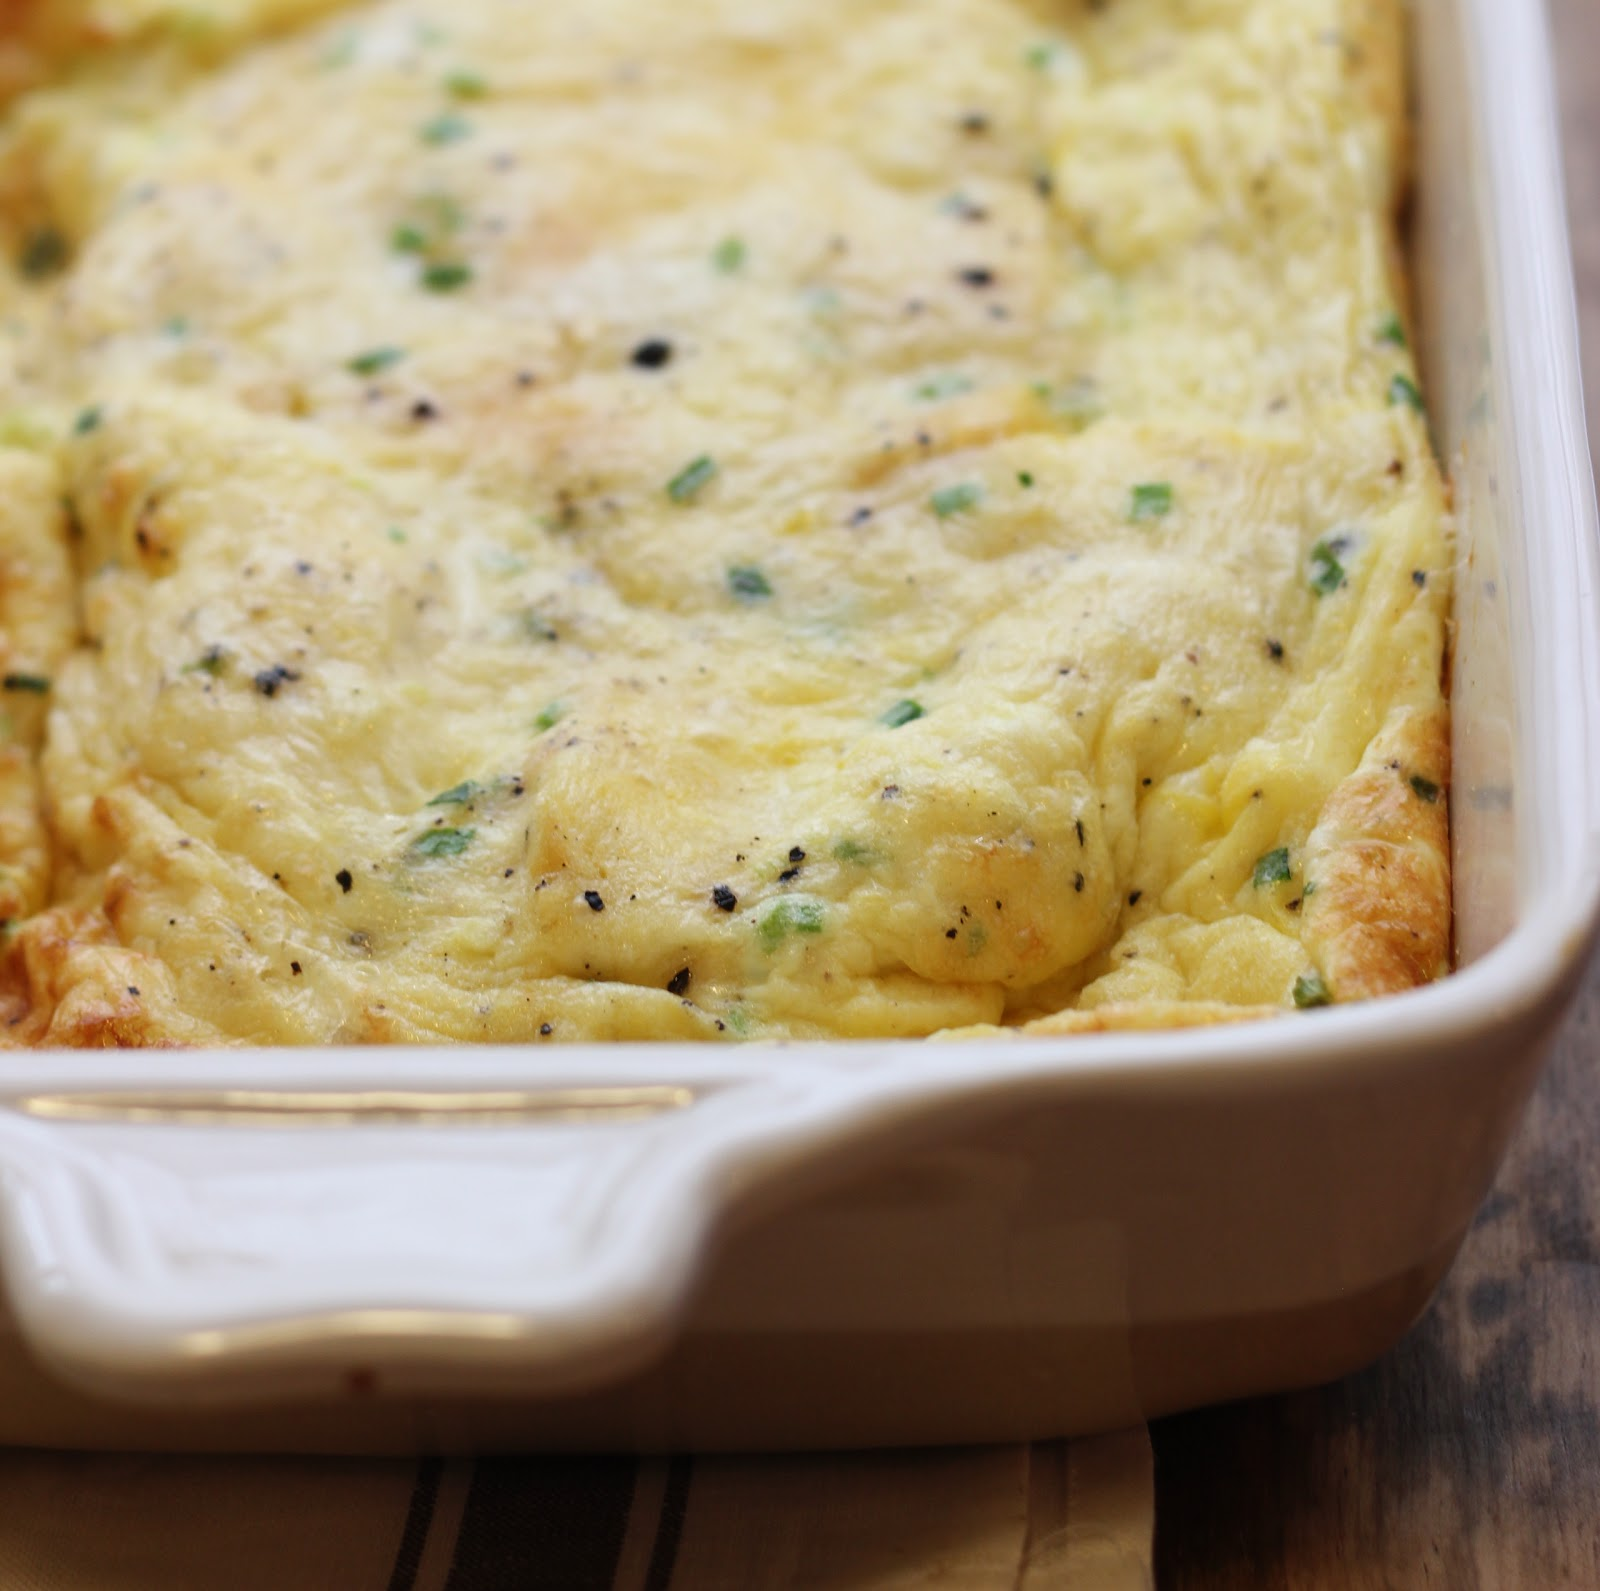 Egg Strata Best With Chive and Cheddar Egg White Strata Photos